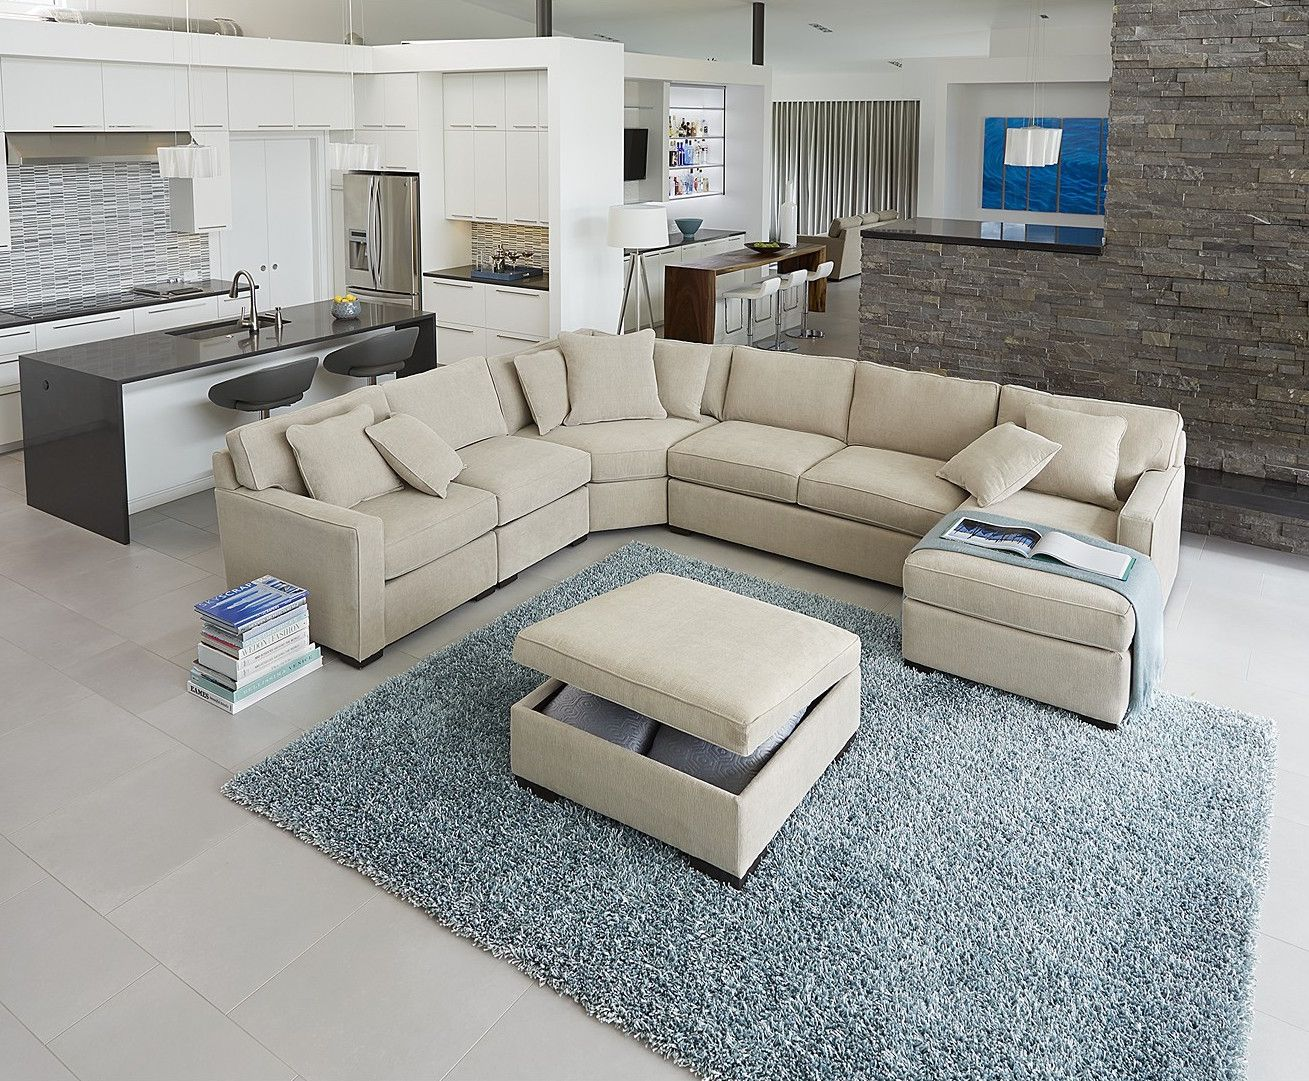 Macy s furniture outlet - This Is The Couch We Are Getting Macy S Radley 5 Pc Sectional In Chrome